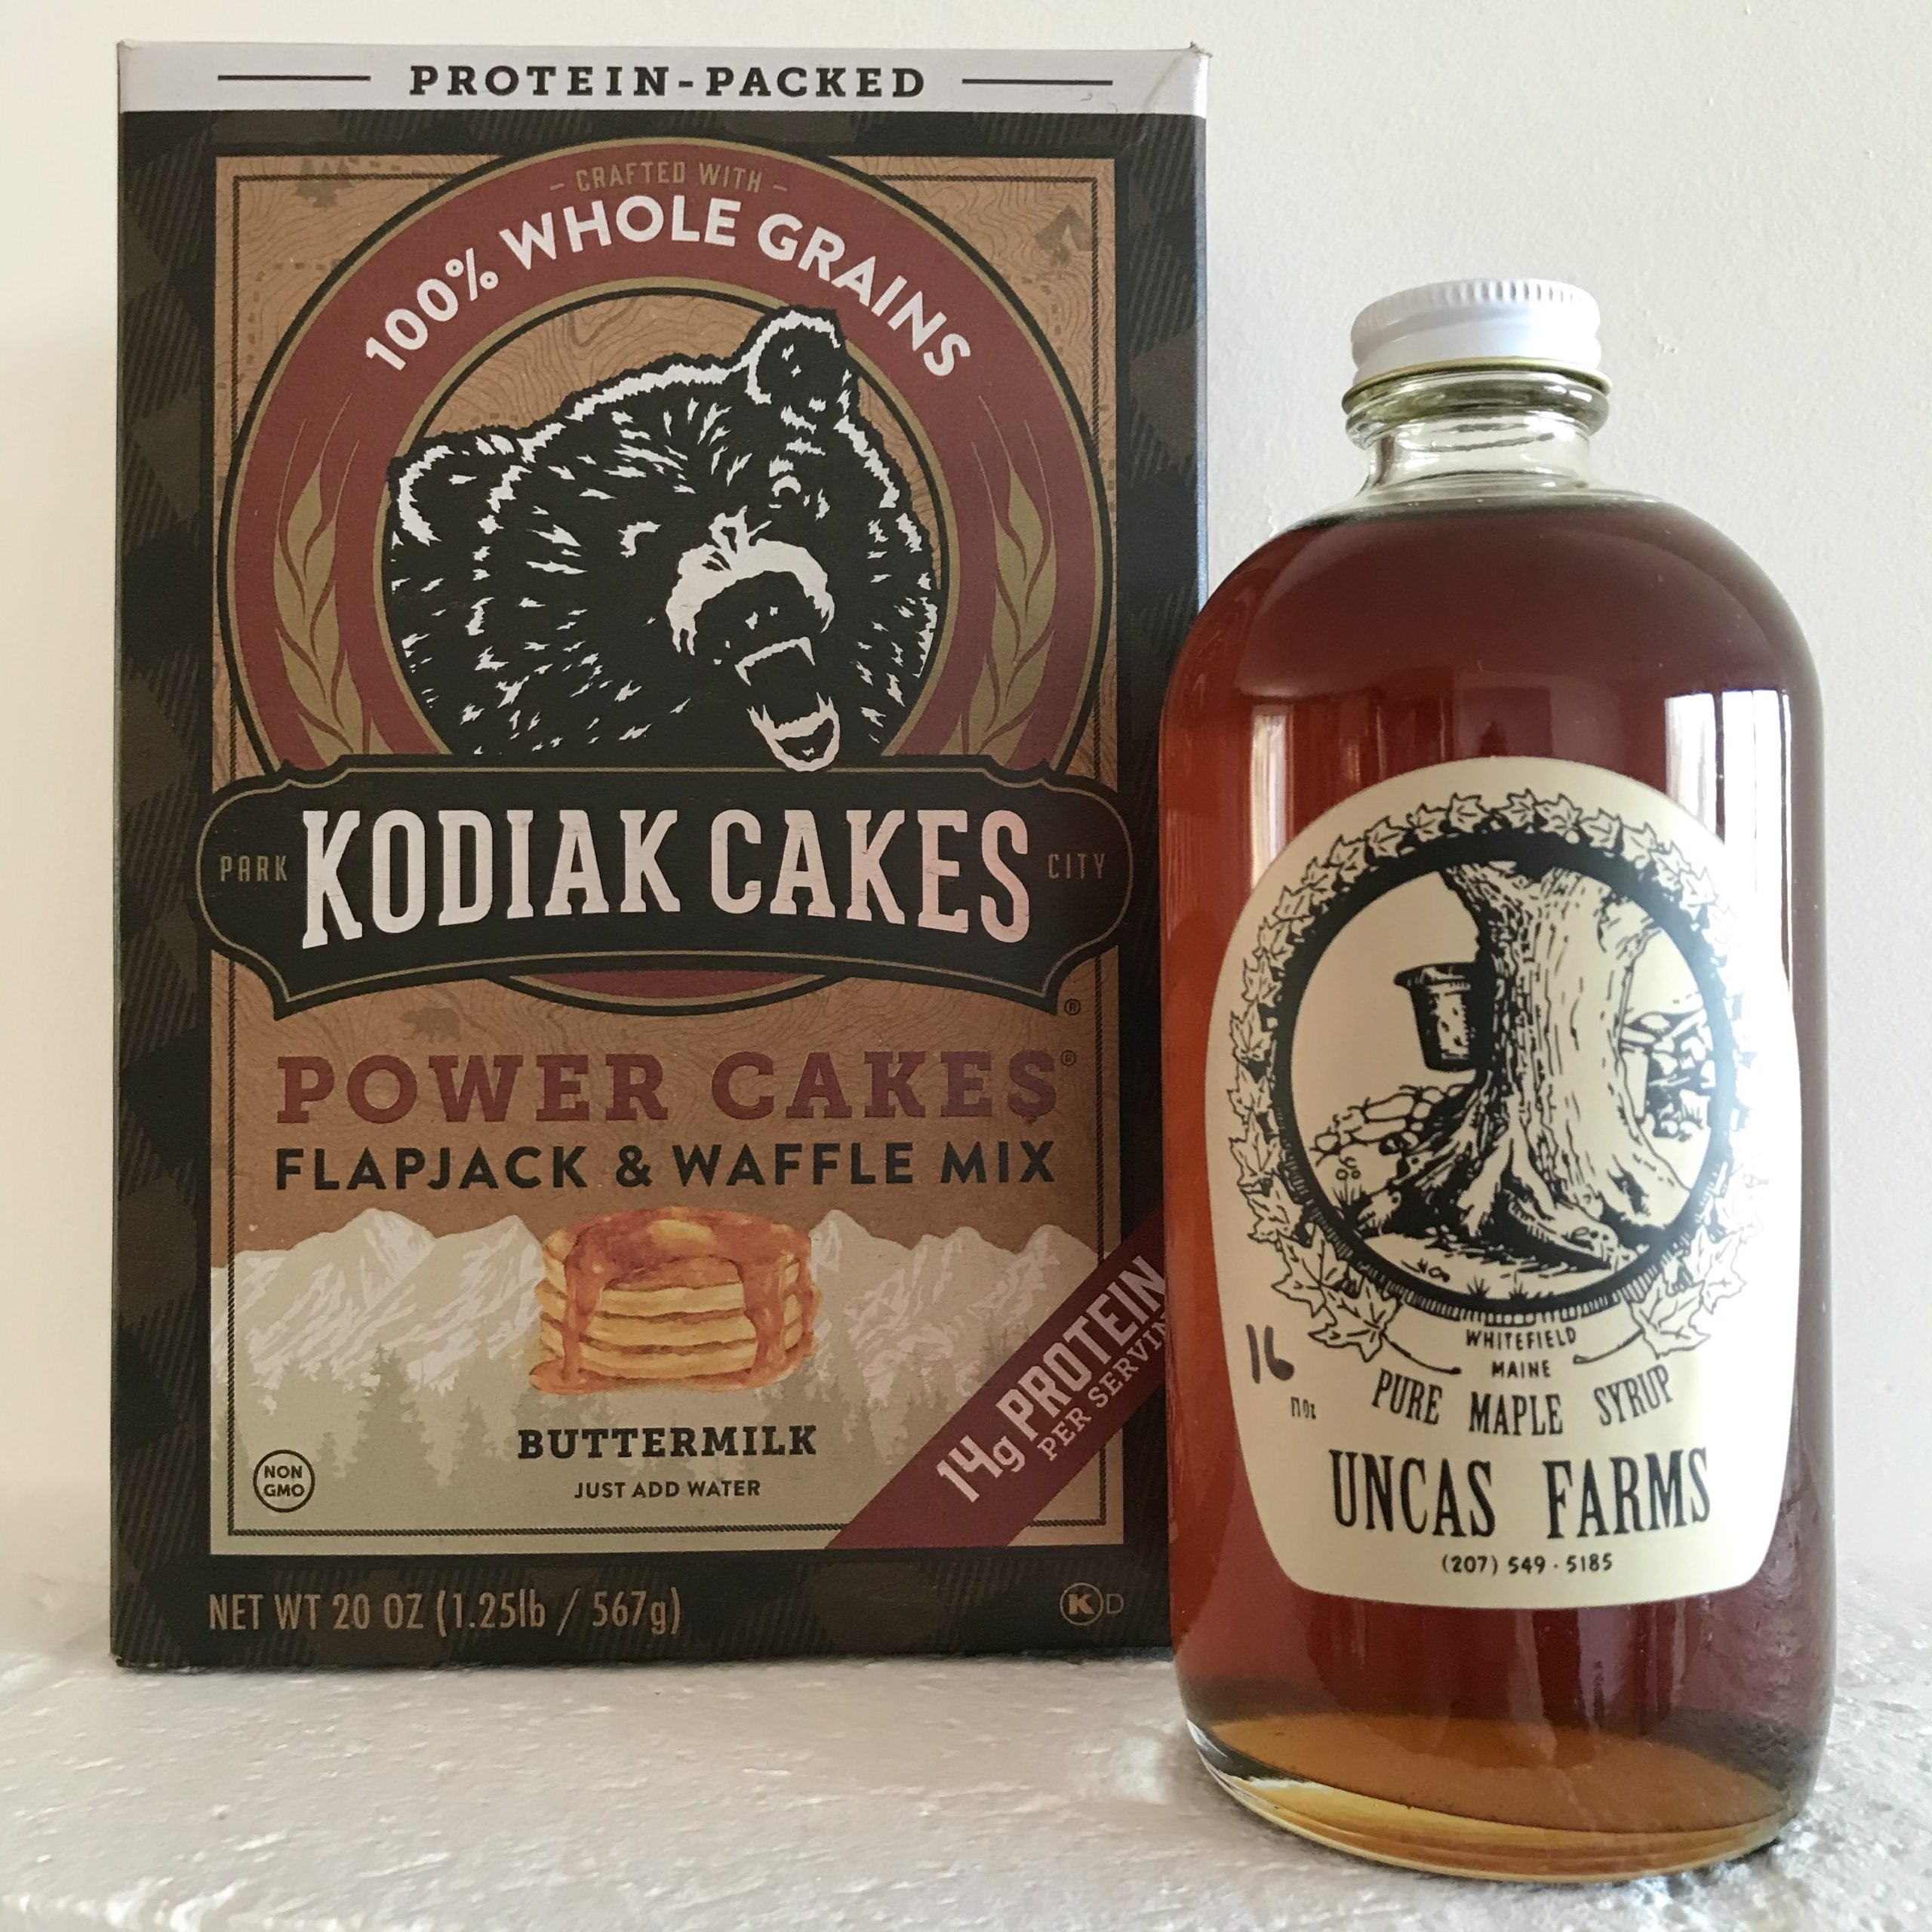 Made in Maine – Uncas Farms Pure Maple Syrup Giveaway